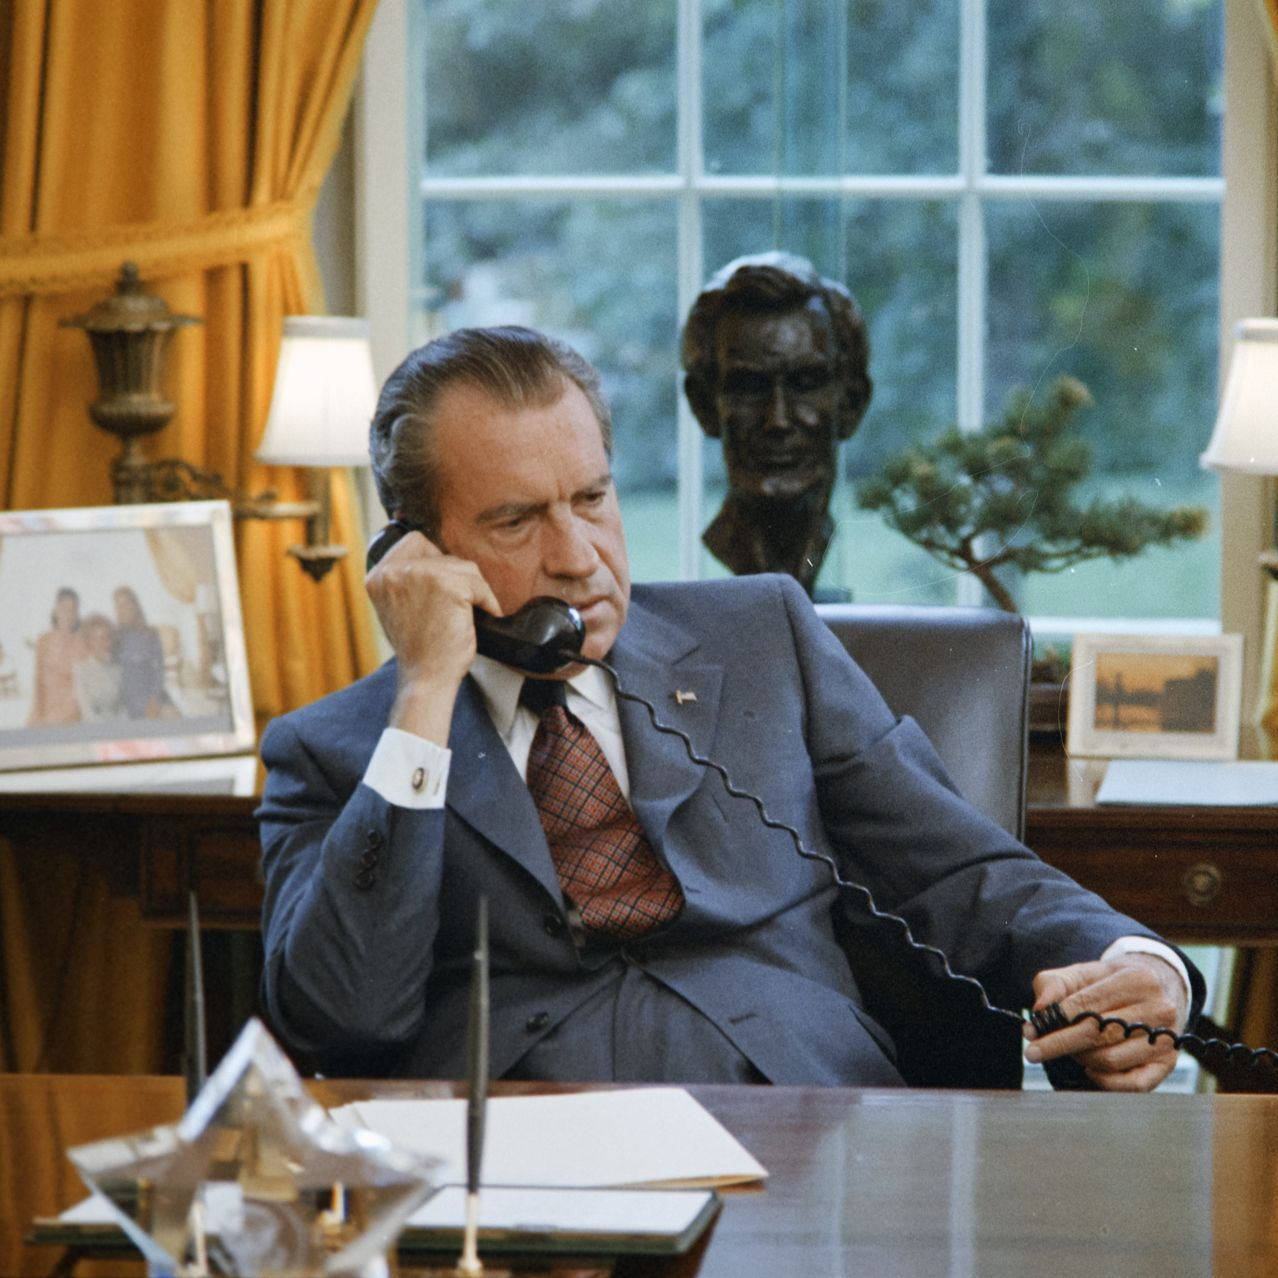 President Nixon at his desk in the White House in June 1972, the month that a break-in at the Watergate complex in Washington unleashed a protracted political scandal.